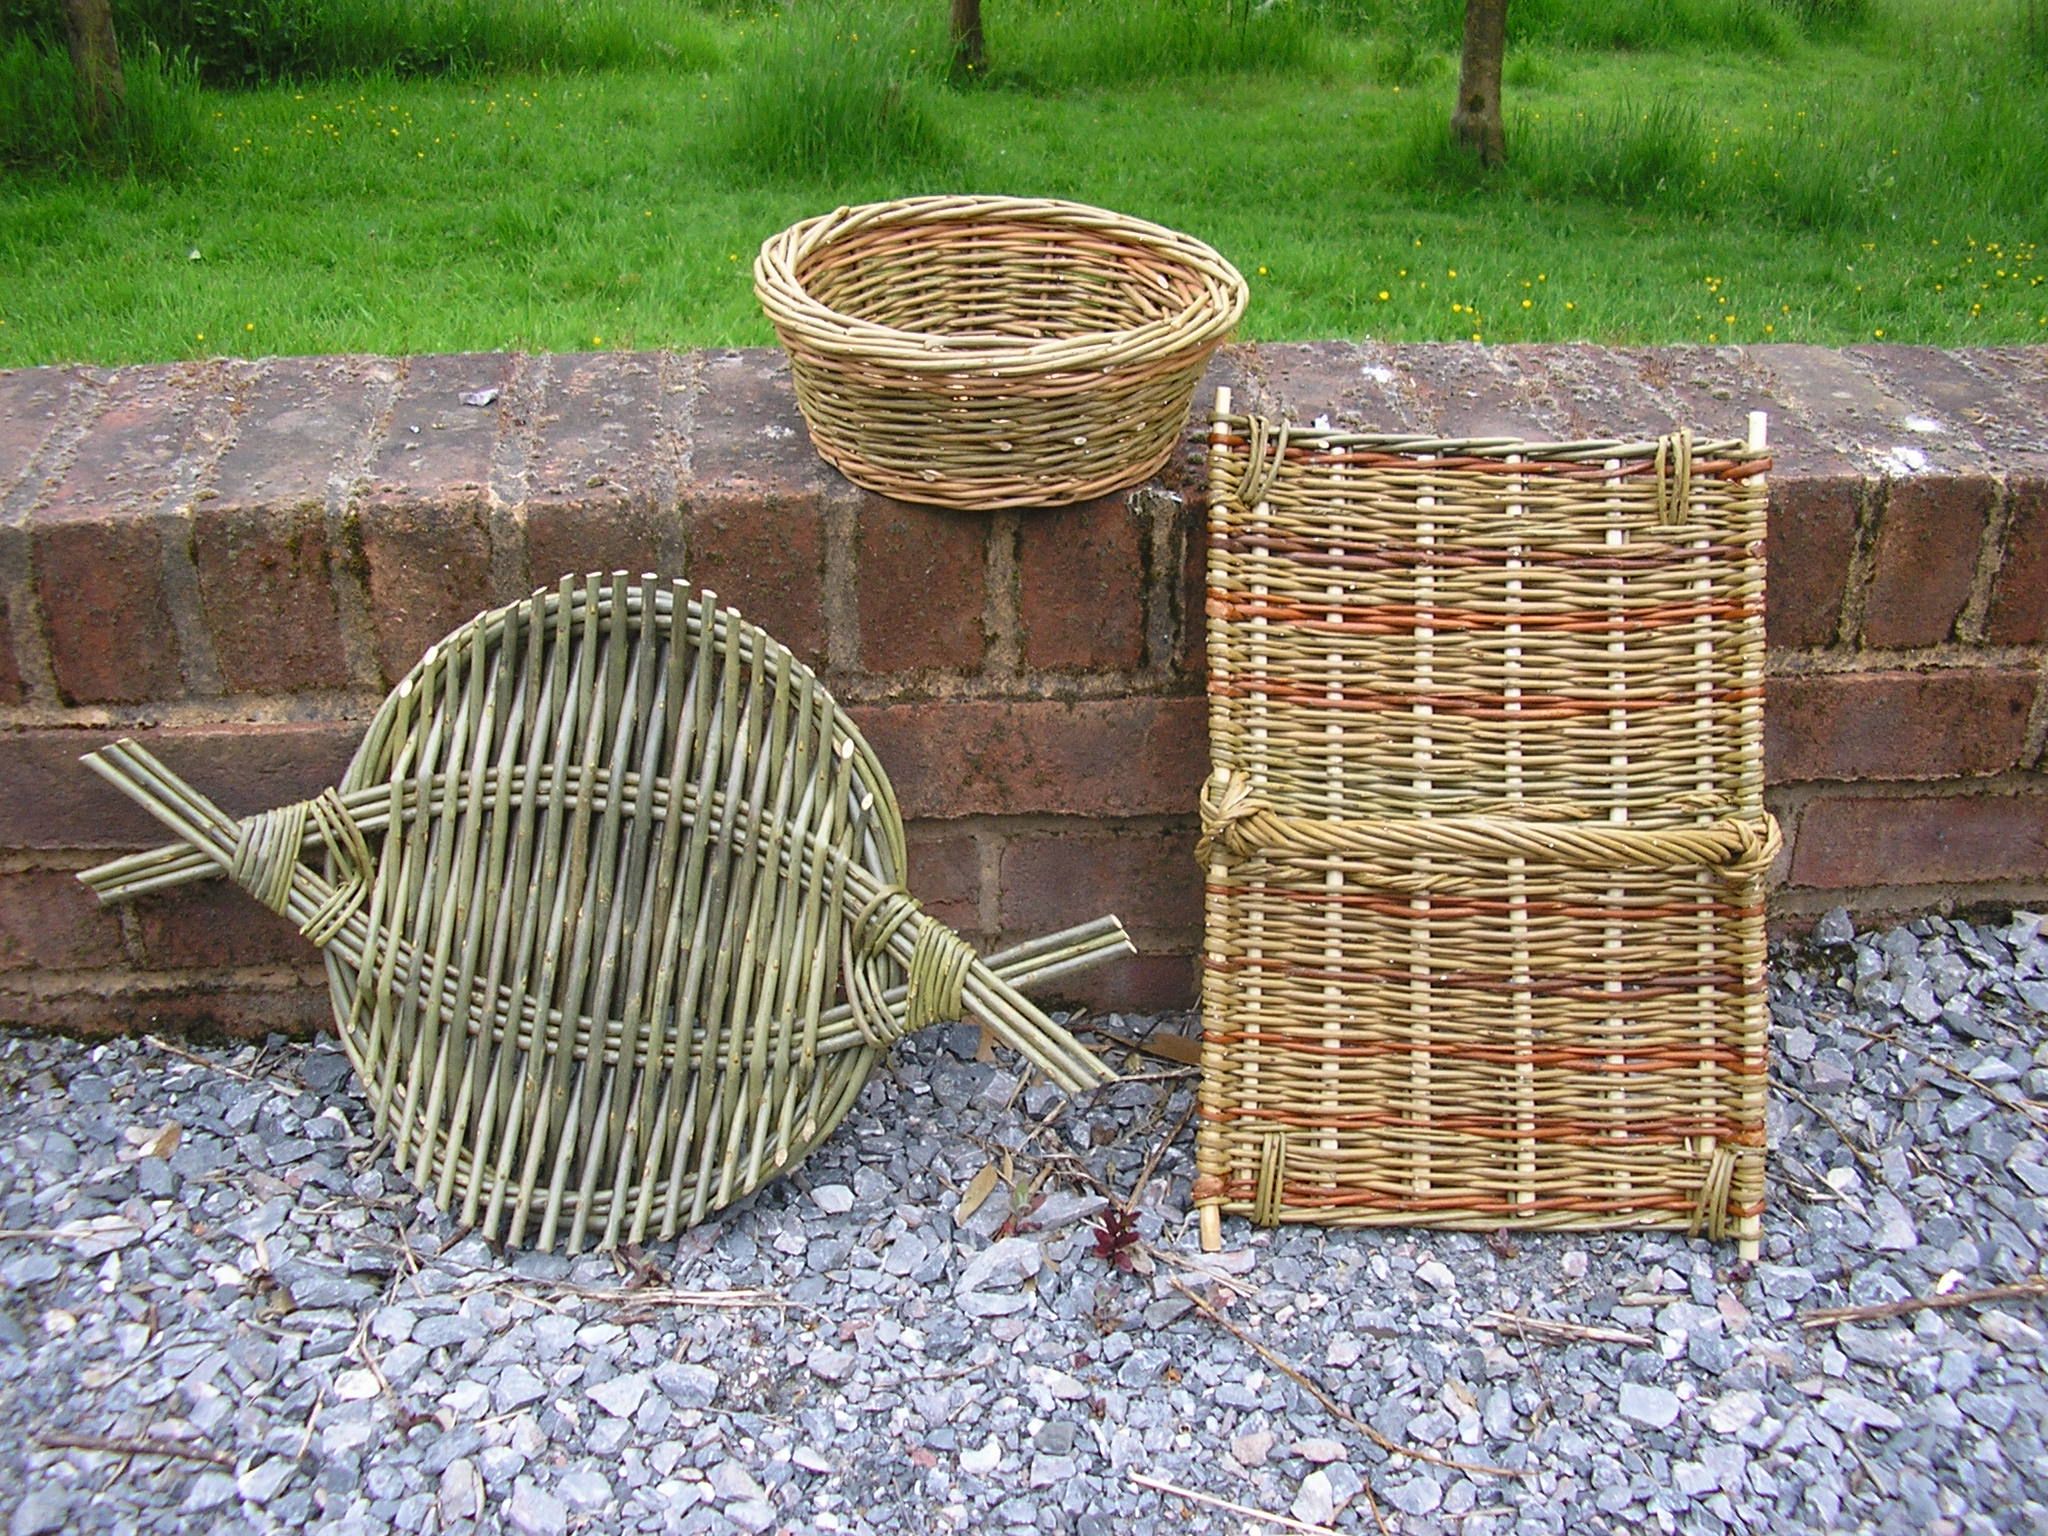 Willow craft: the cheese tray, stick platter and simple round basket